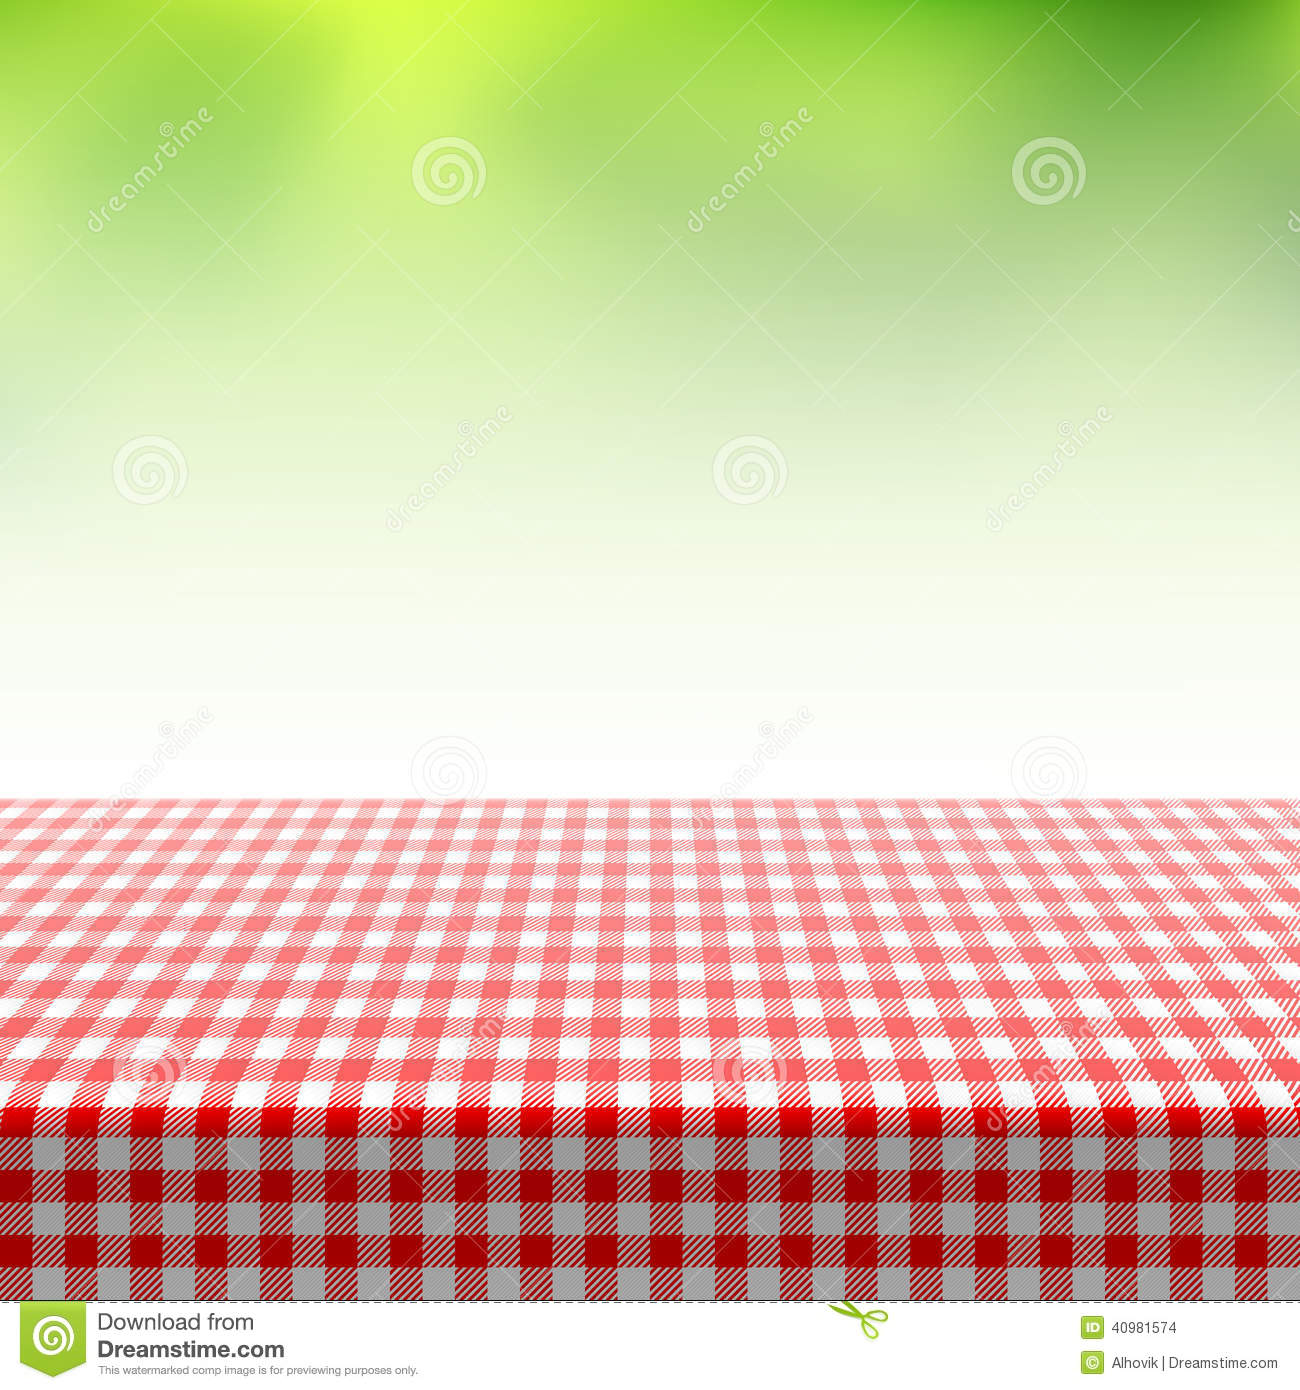 Picnic Table Covered With Checkered Tablecloth Stock ...